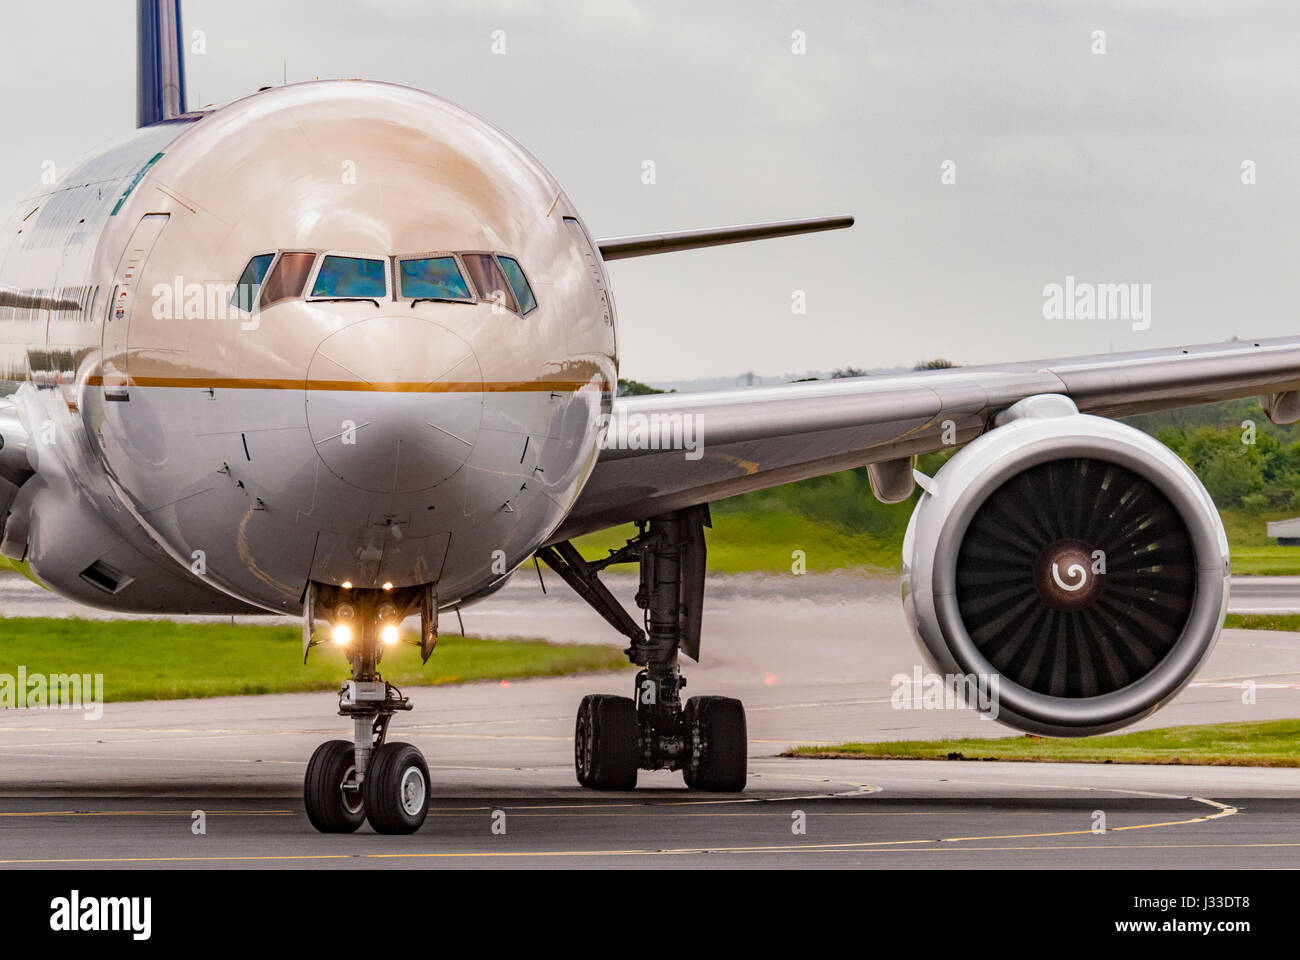 A Saudi Arabian Airlines Boeing 777-268(ER) HZ-AKI at Manchester airport. - Stock Image